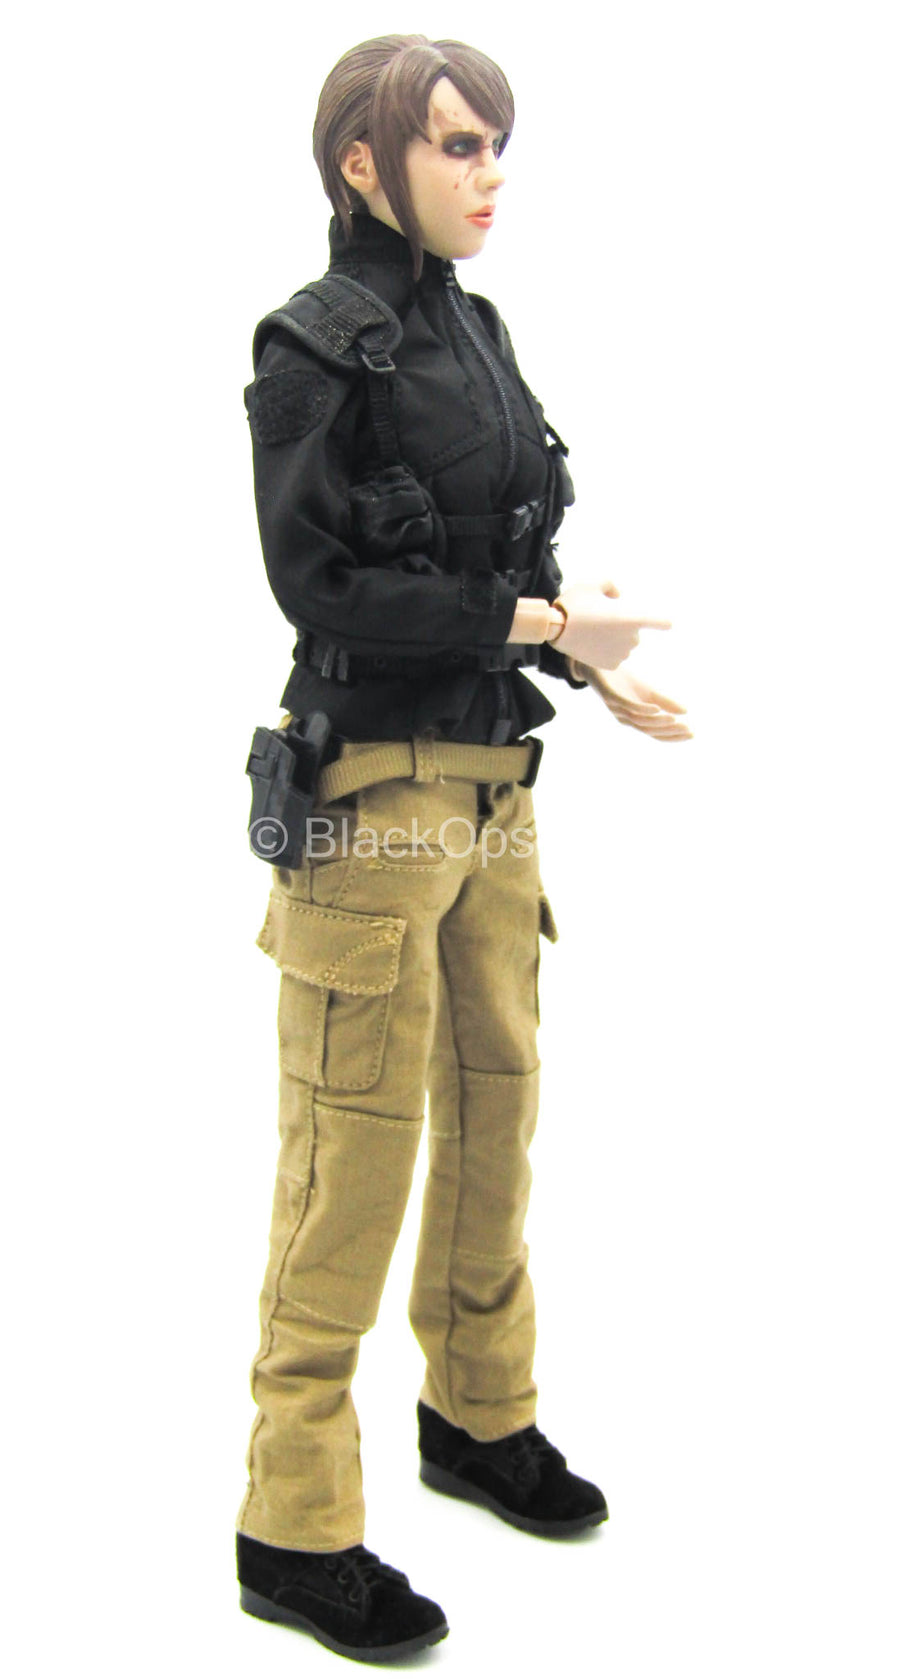 Black Jacket & Tactical Vest w/Tan Pants & Black Boots